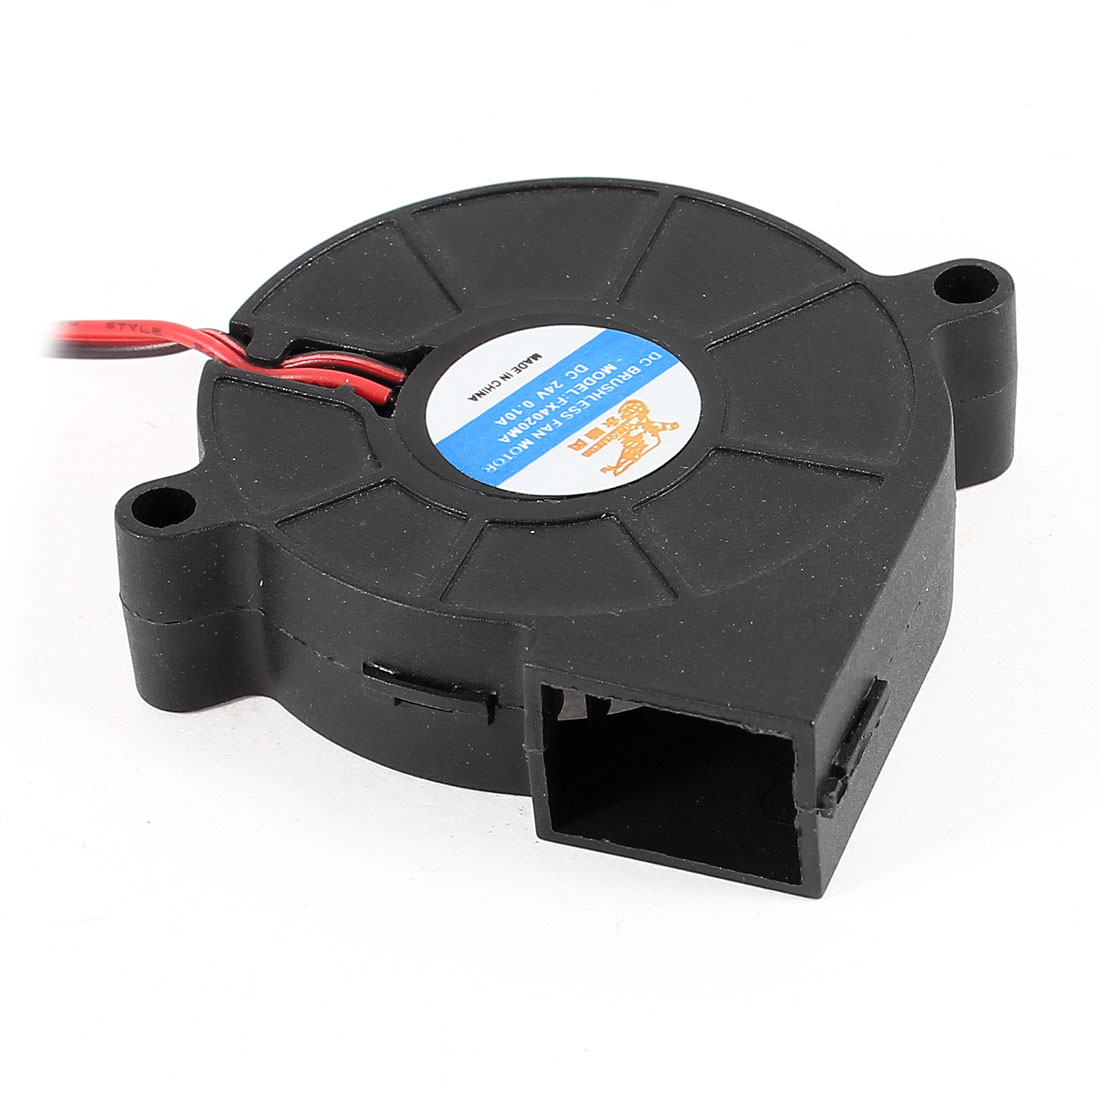 DC Brushless 2 Wires Cooling Blower Fan Cooler 5015S 50mmx15mm Black DC 24V 0.1A